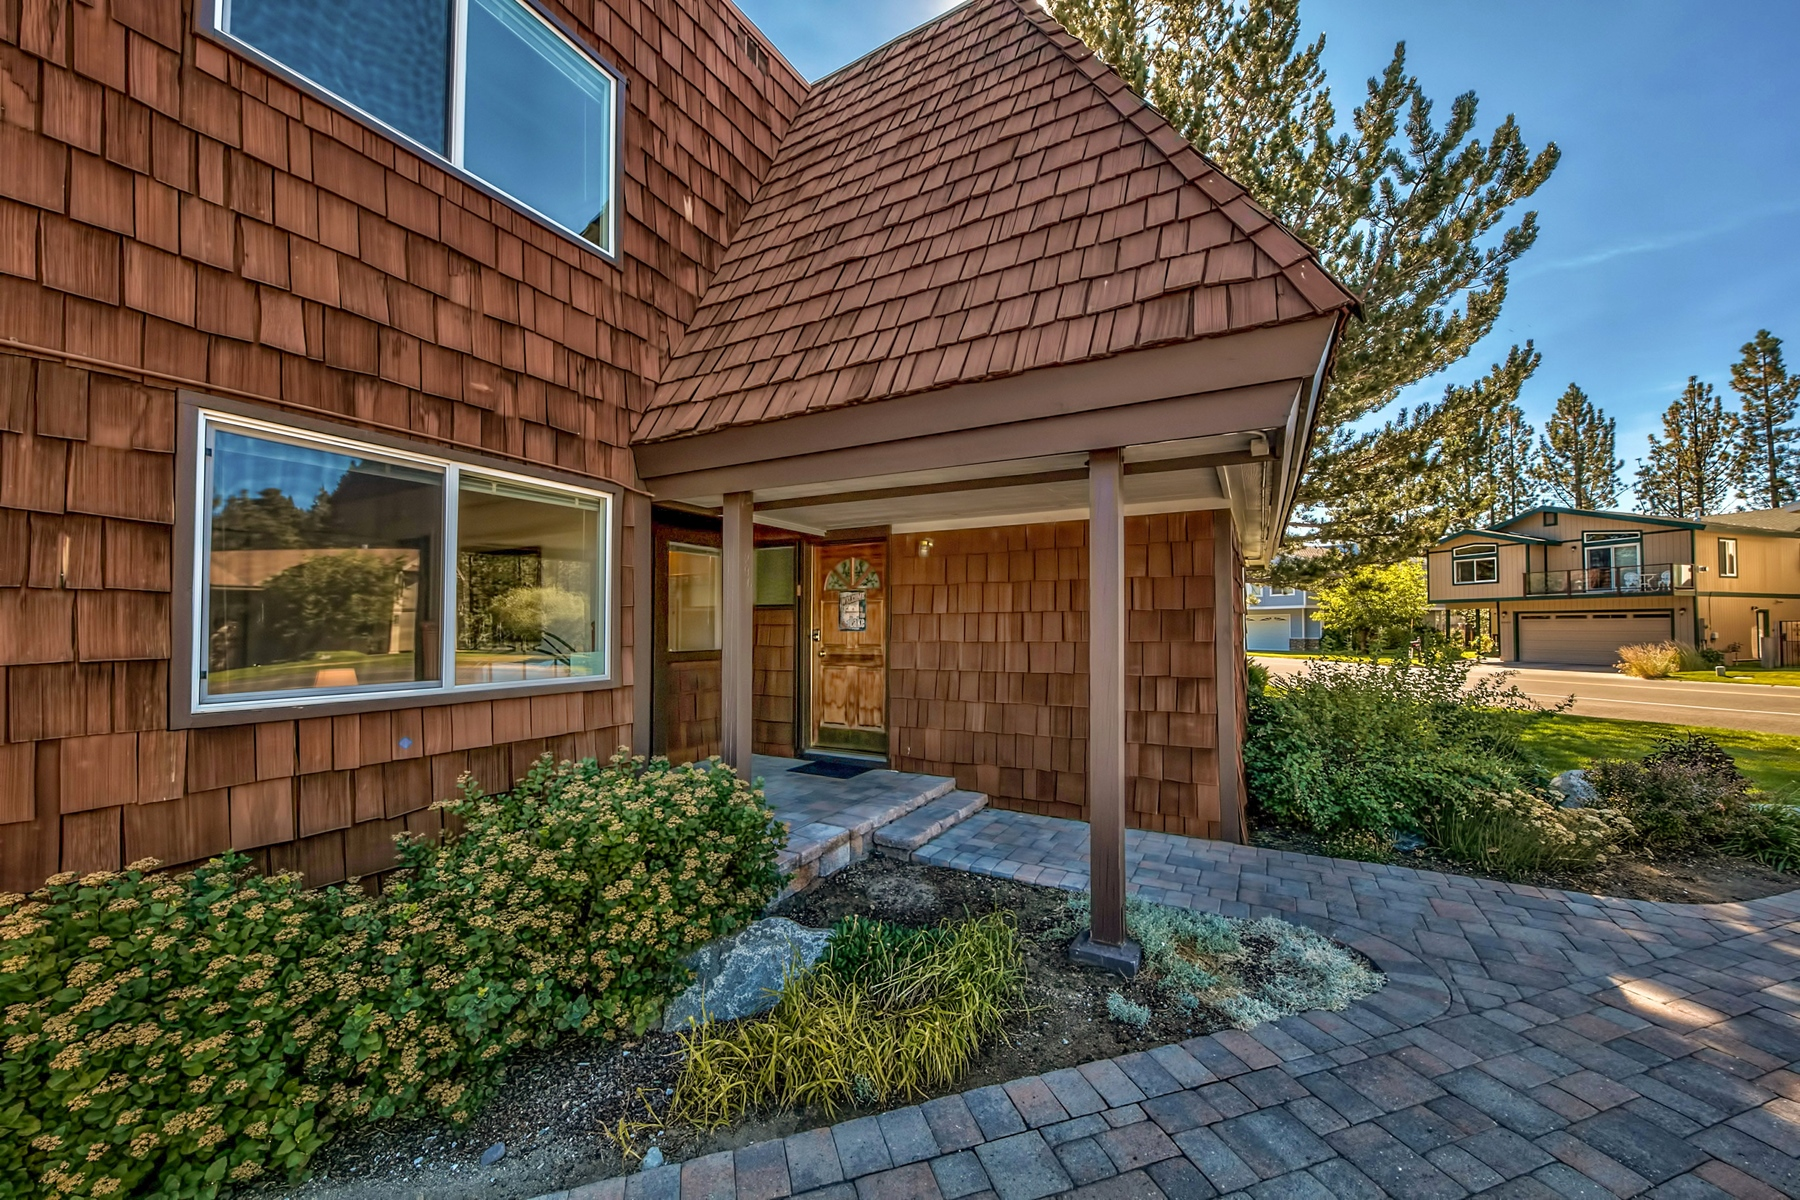 Property for Active at 2071 Venice Drive #296, South Lake Tahoe, CA 96150 2071 Venice Drive #296 South Lake Tahoe, California 96150 United States